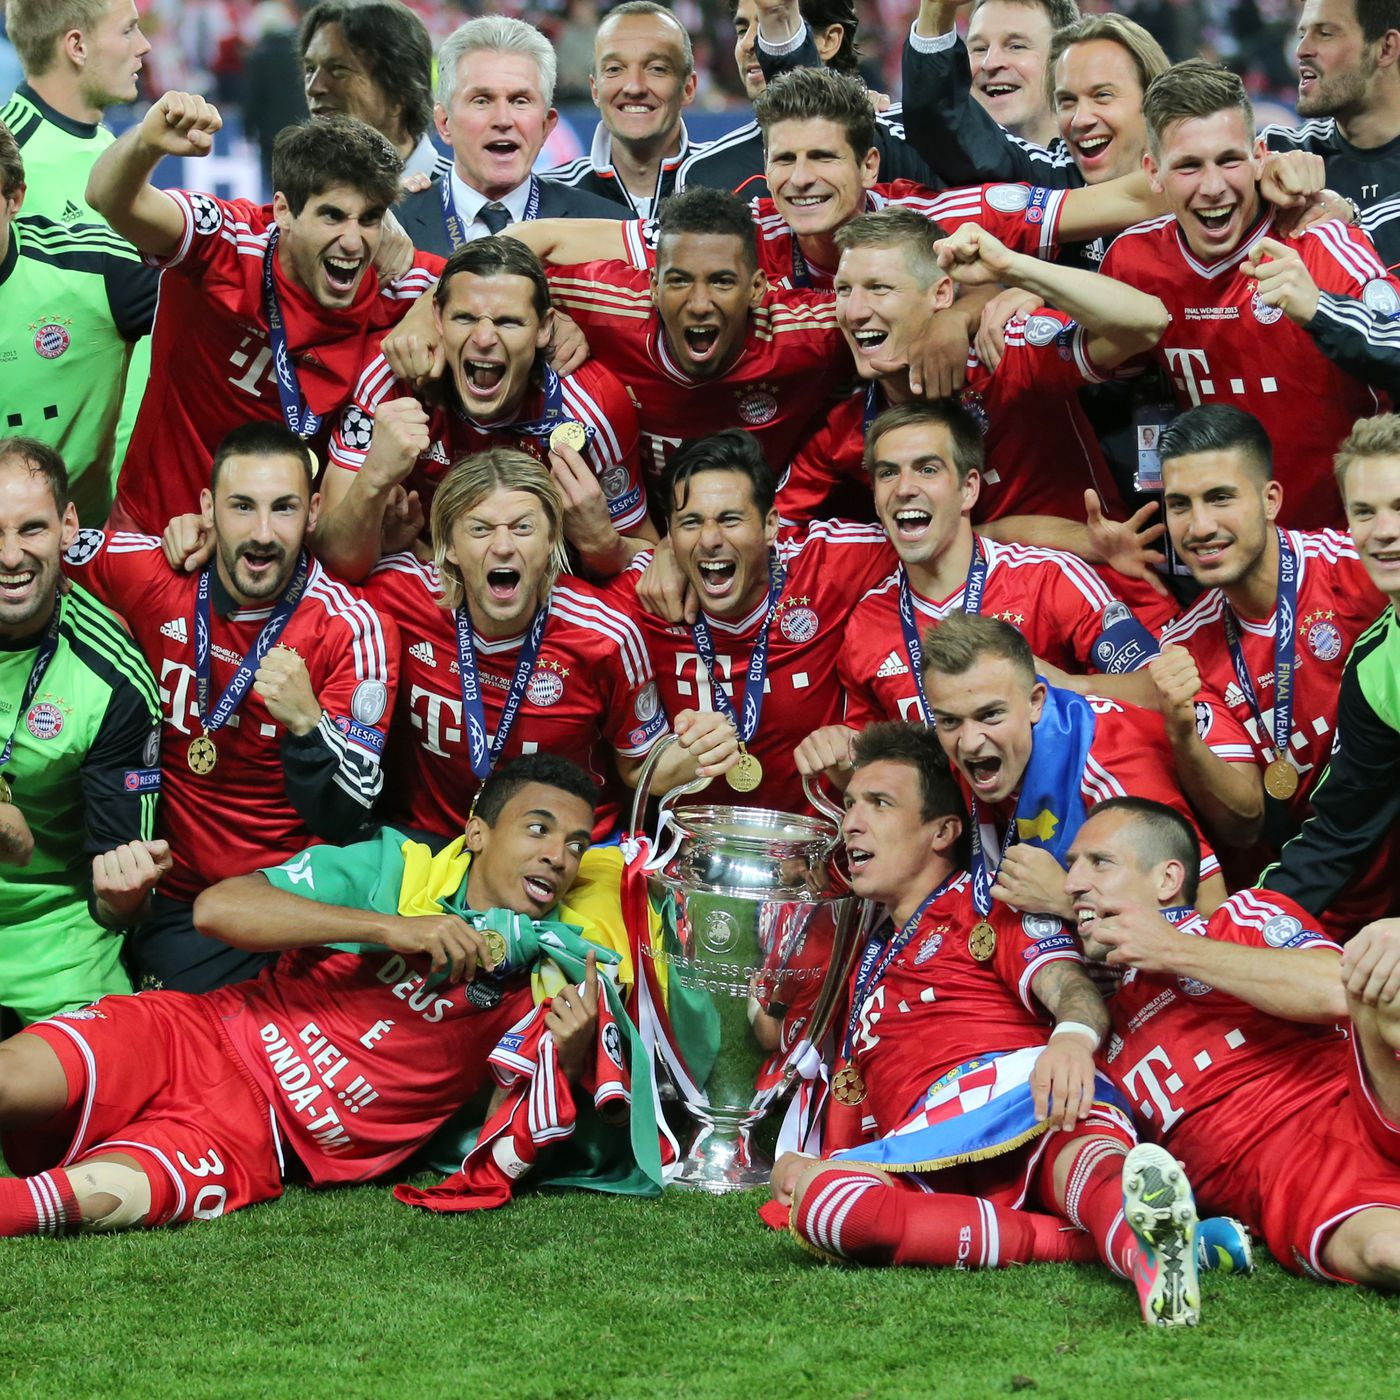 Bayern Munich Has The 2nd Best Odds To Win The Champions League Bavarian Football Works